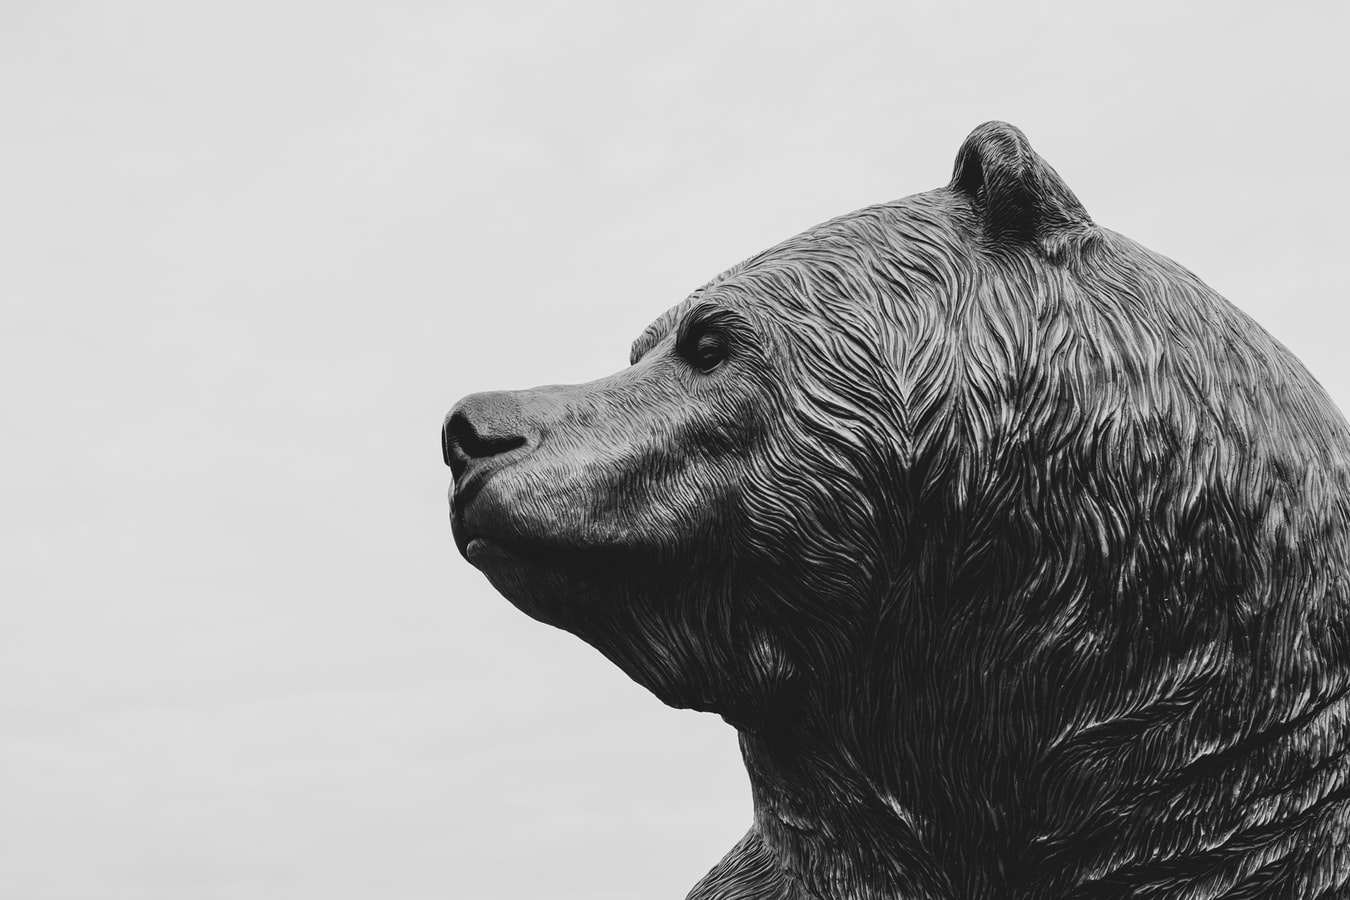 wall street bear statue for a bearish market and bearish options traders